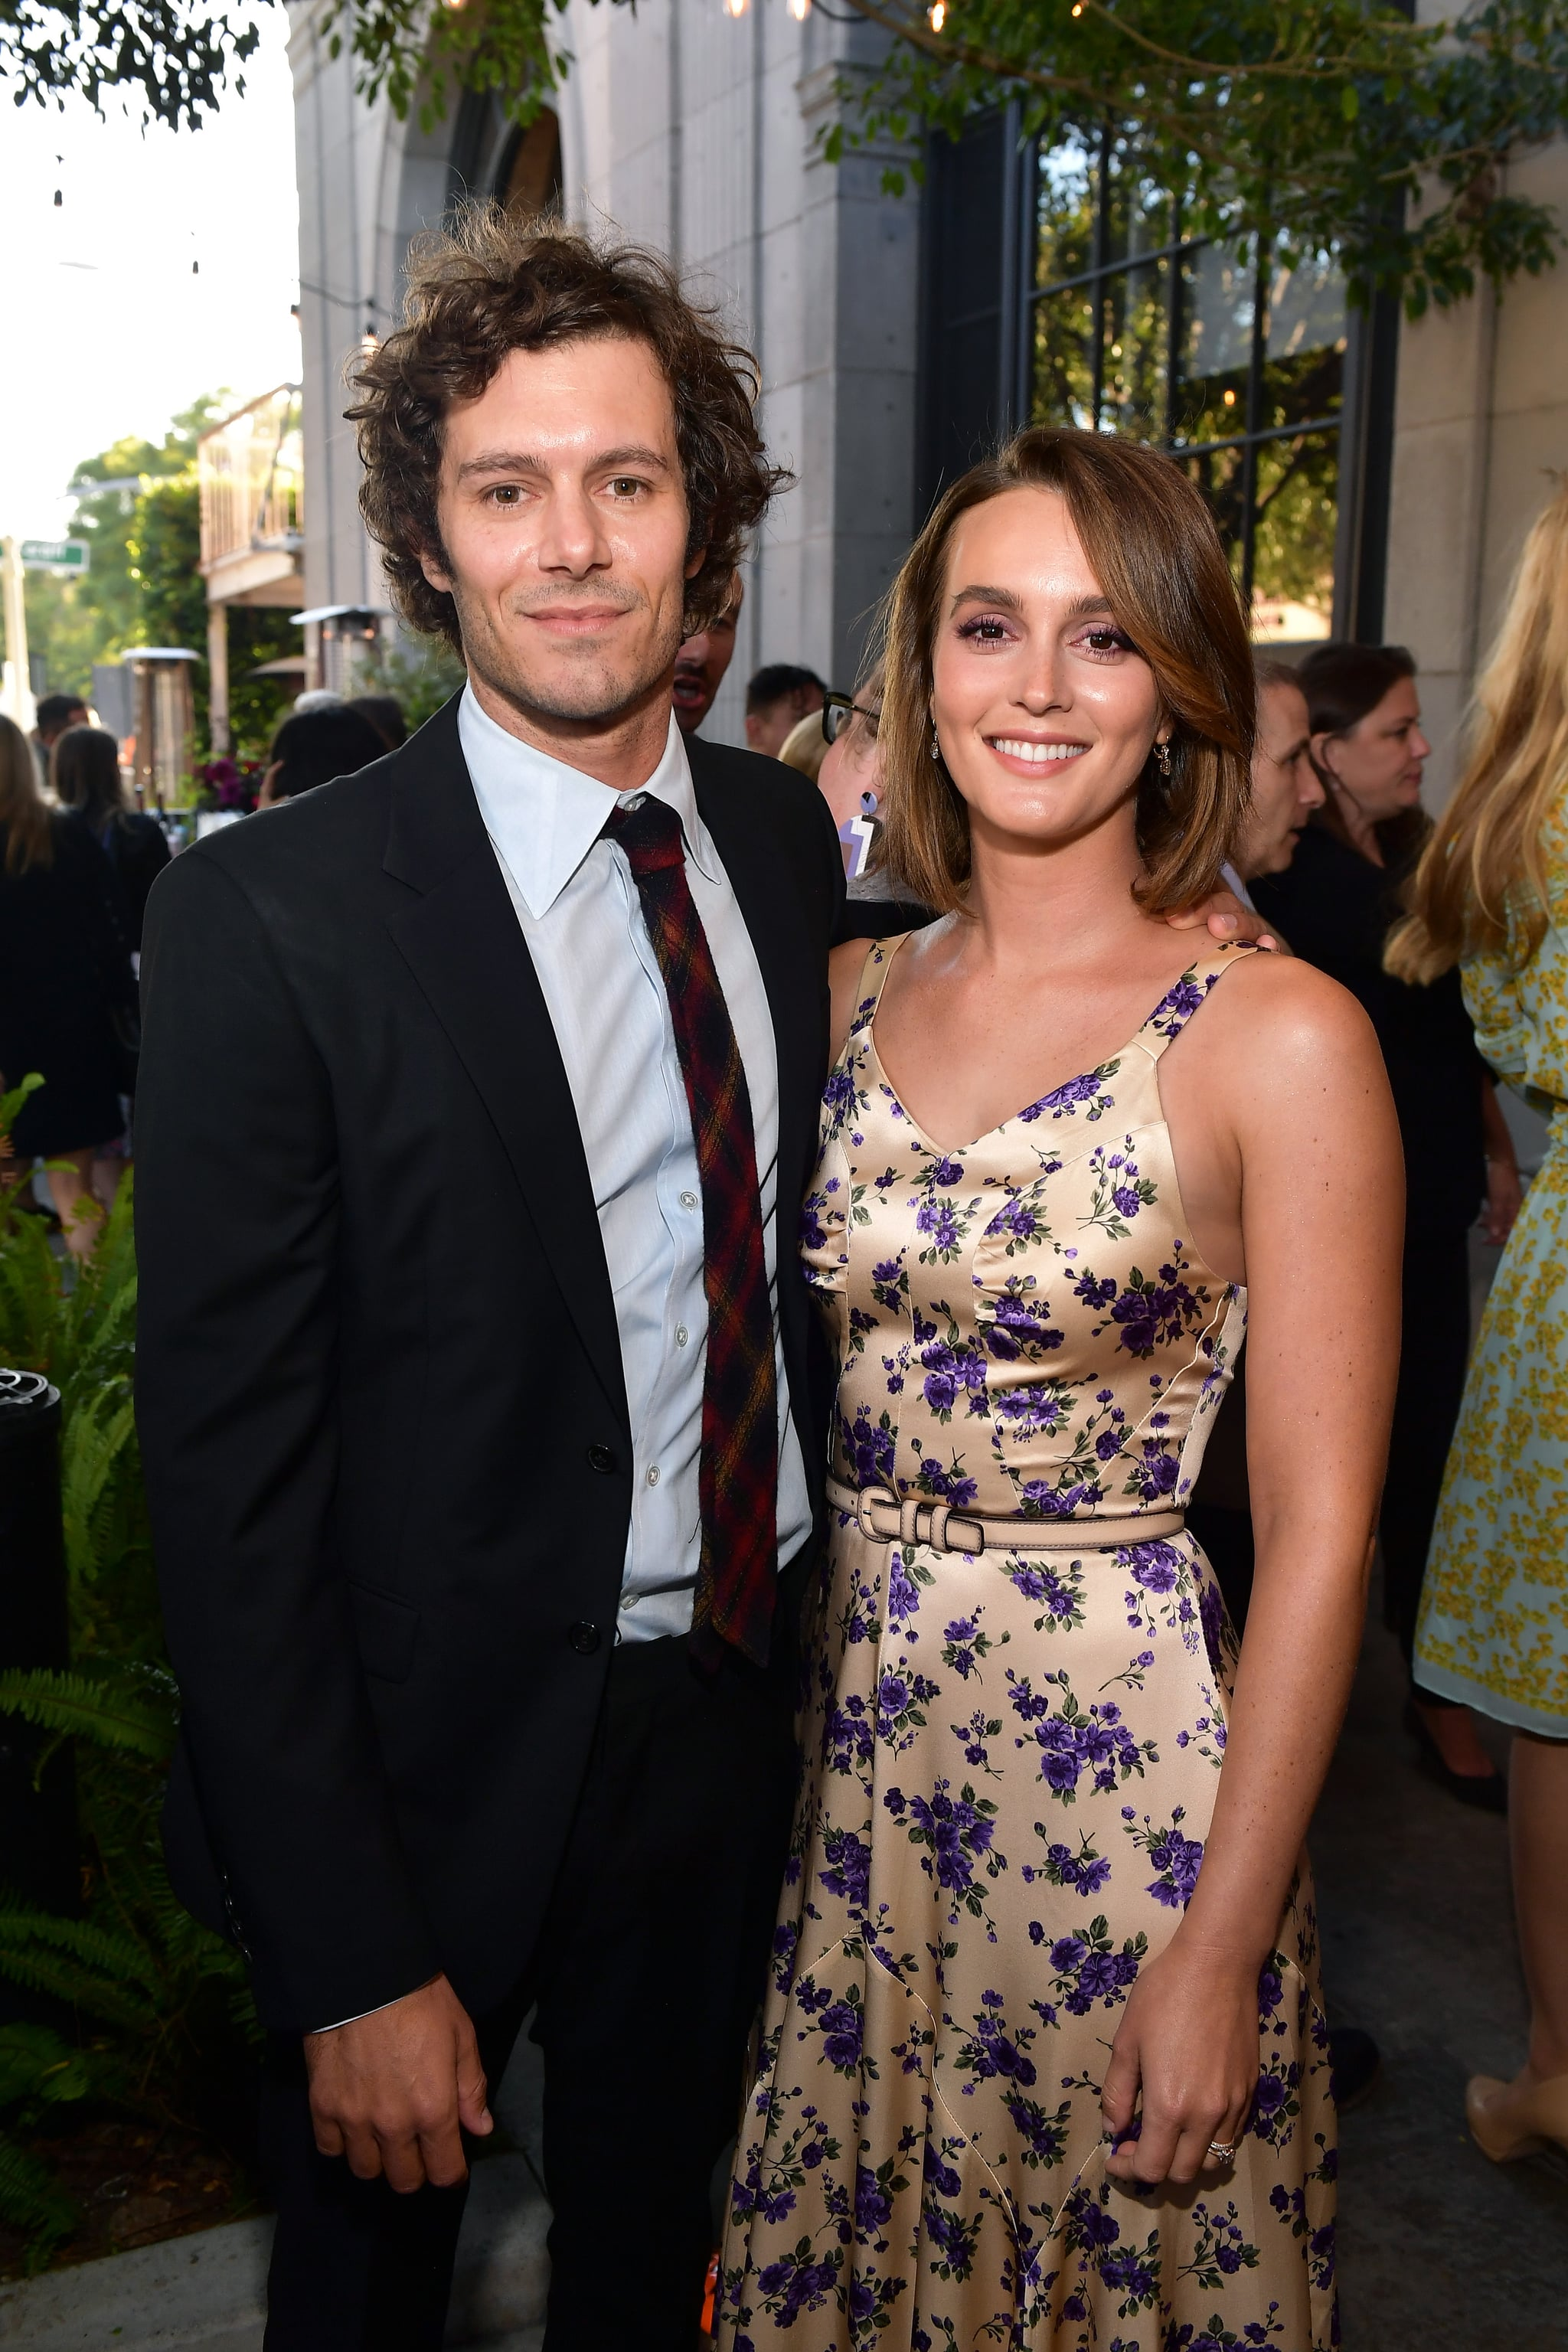 CULVER CITY, CALIFORNIA - AUGUST 19: (L-R) Adam Brody and Leighton Meester attend the LA Screening Of Fox Searchlight's